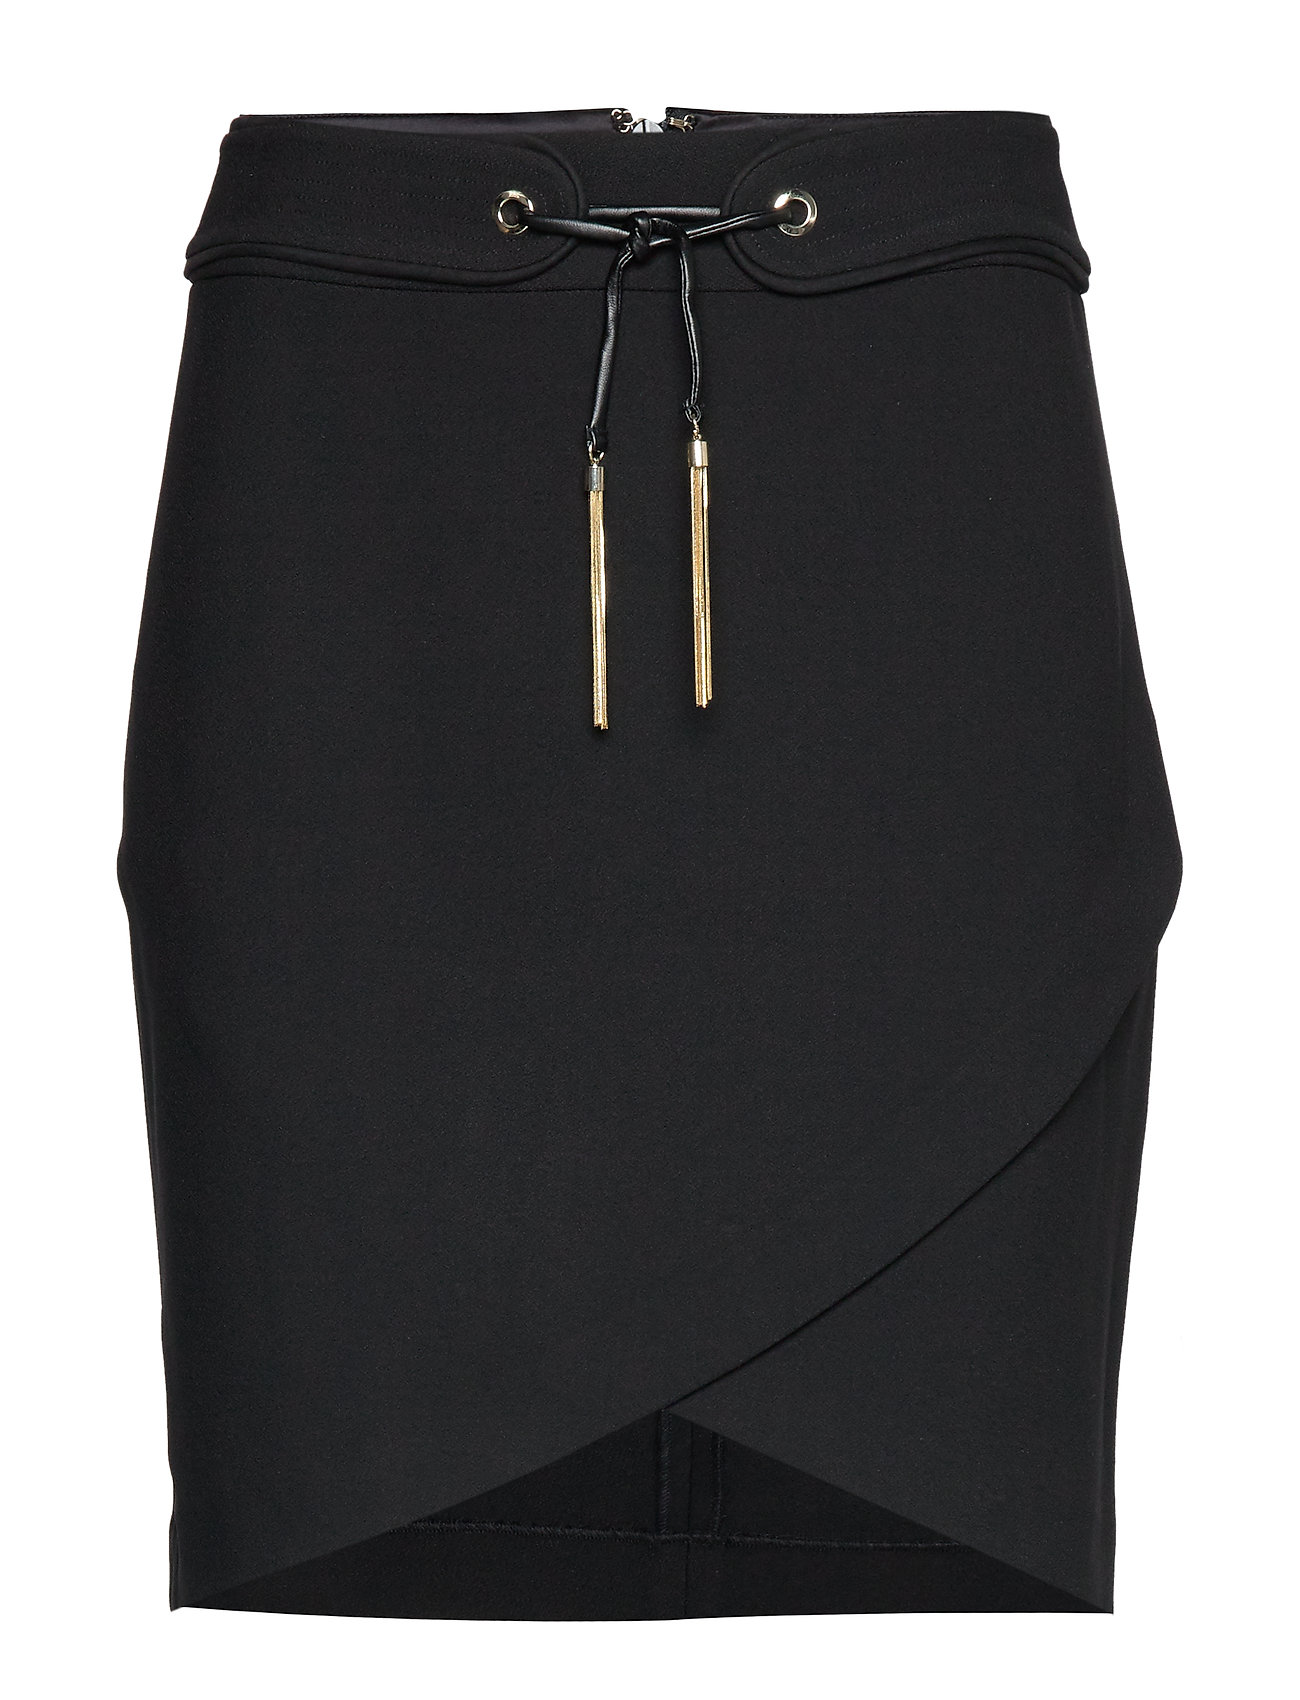 Marciano by GUESS LARA SKIRT - JET BLACK A996